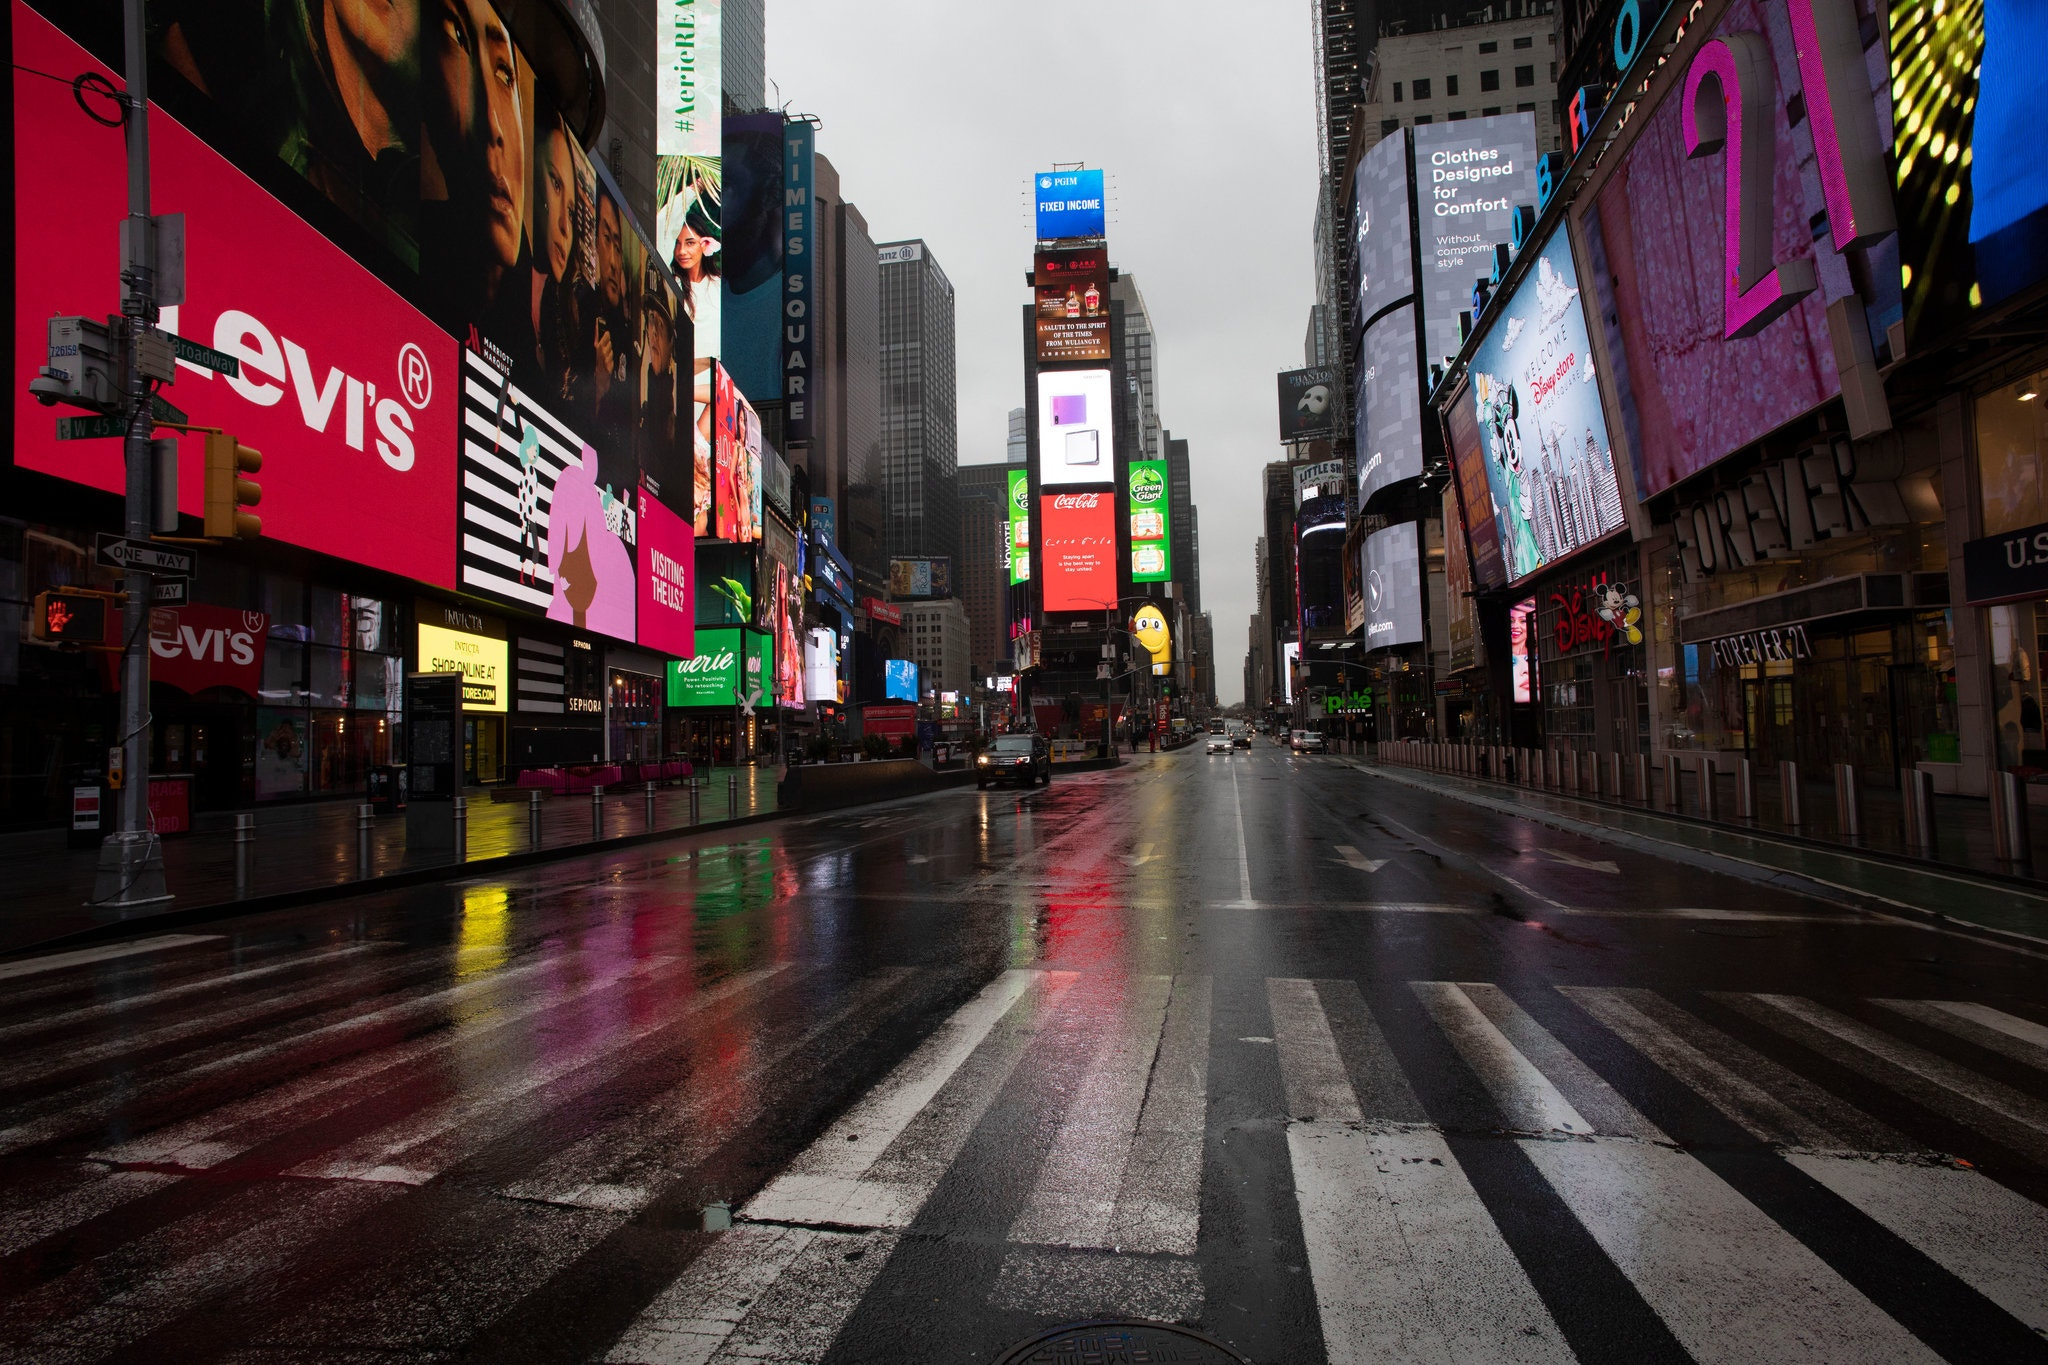 New York, le strade deserte a causa del virus cinese.